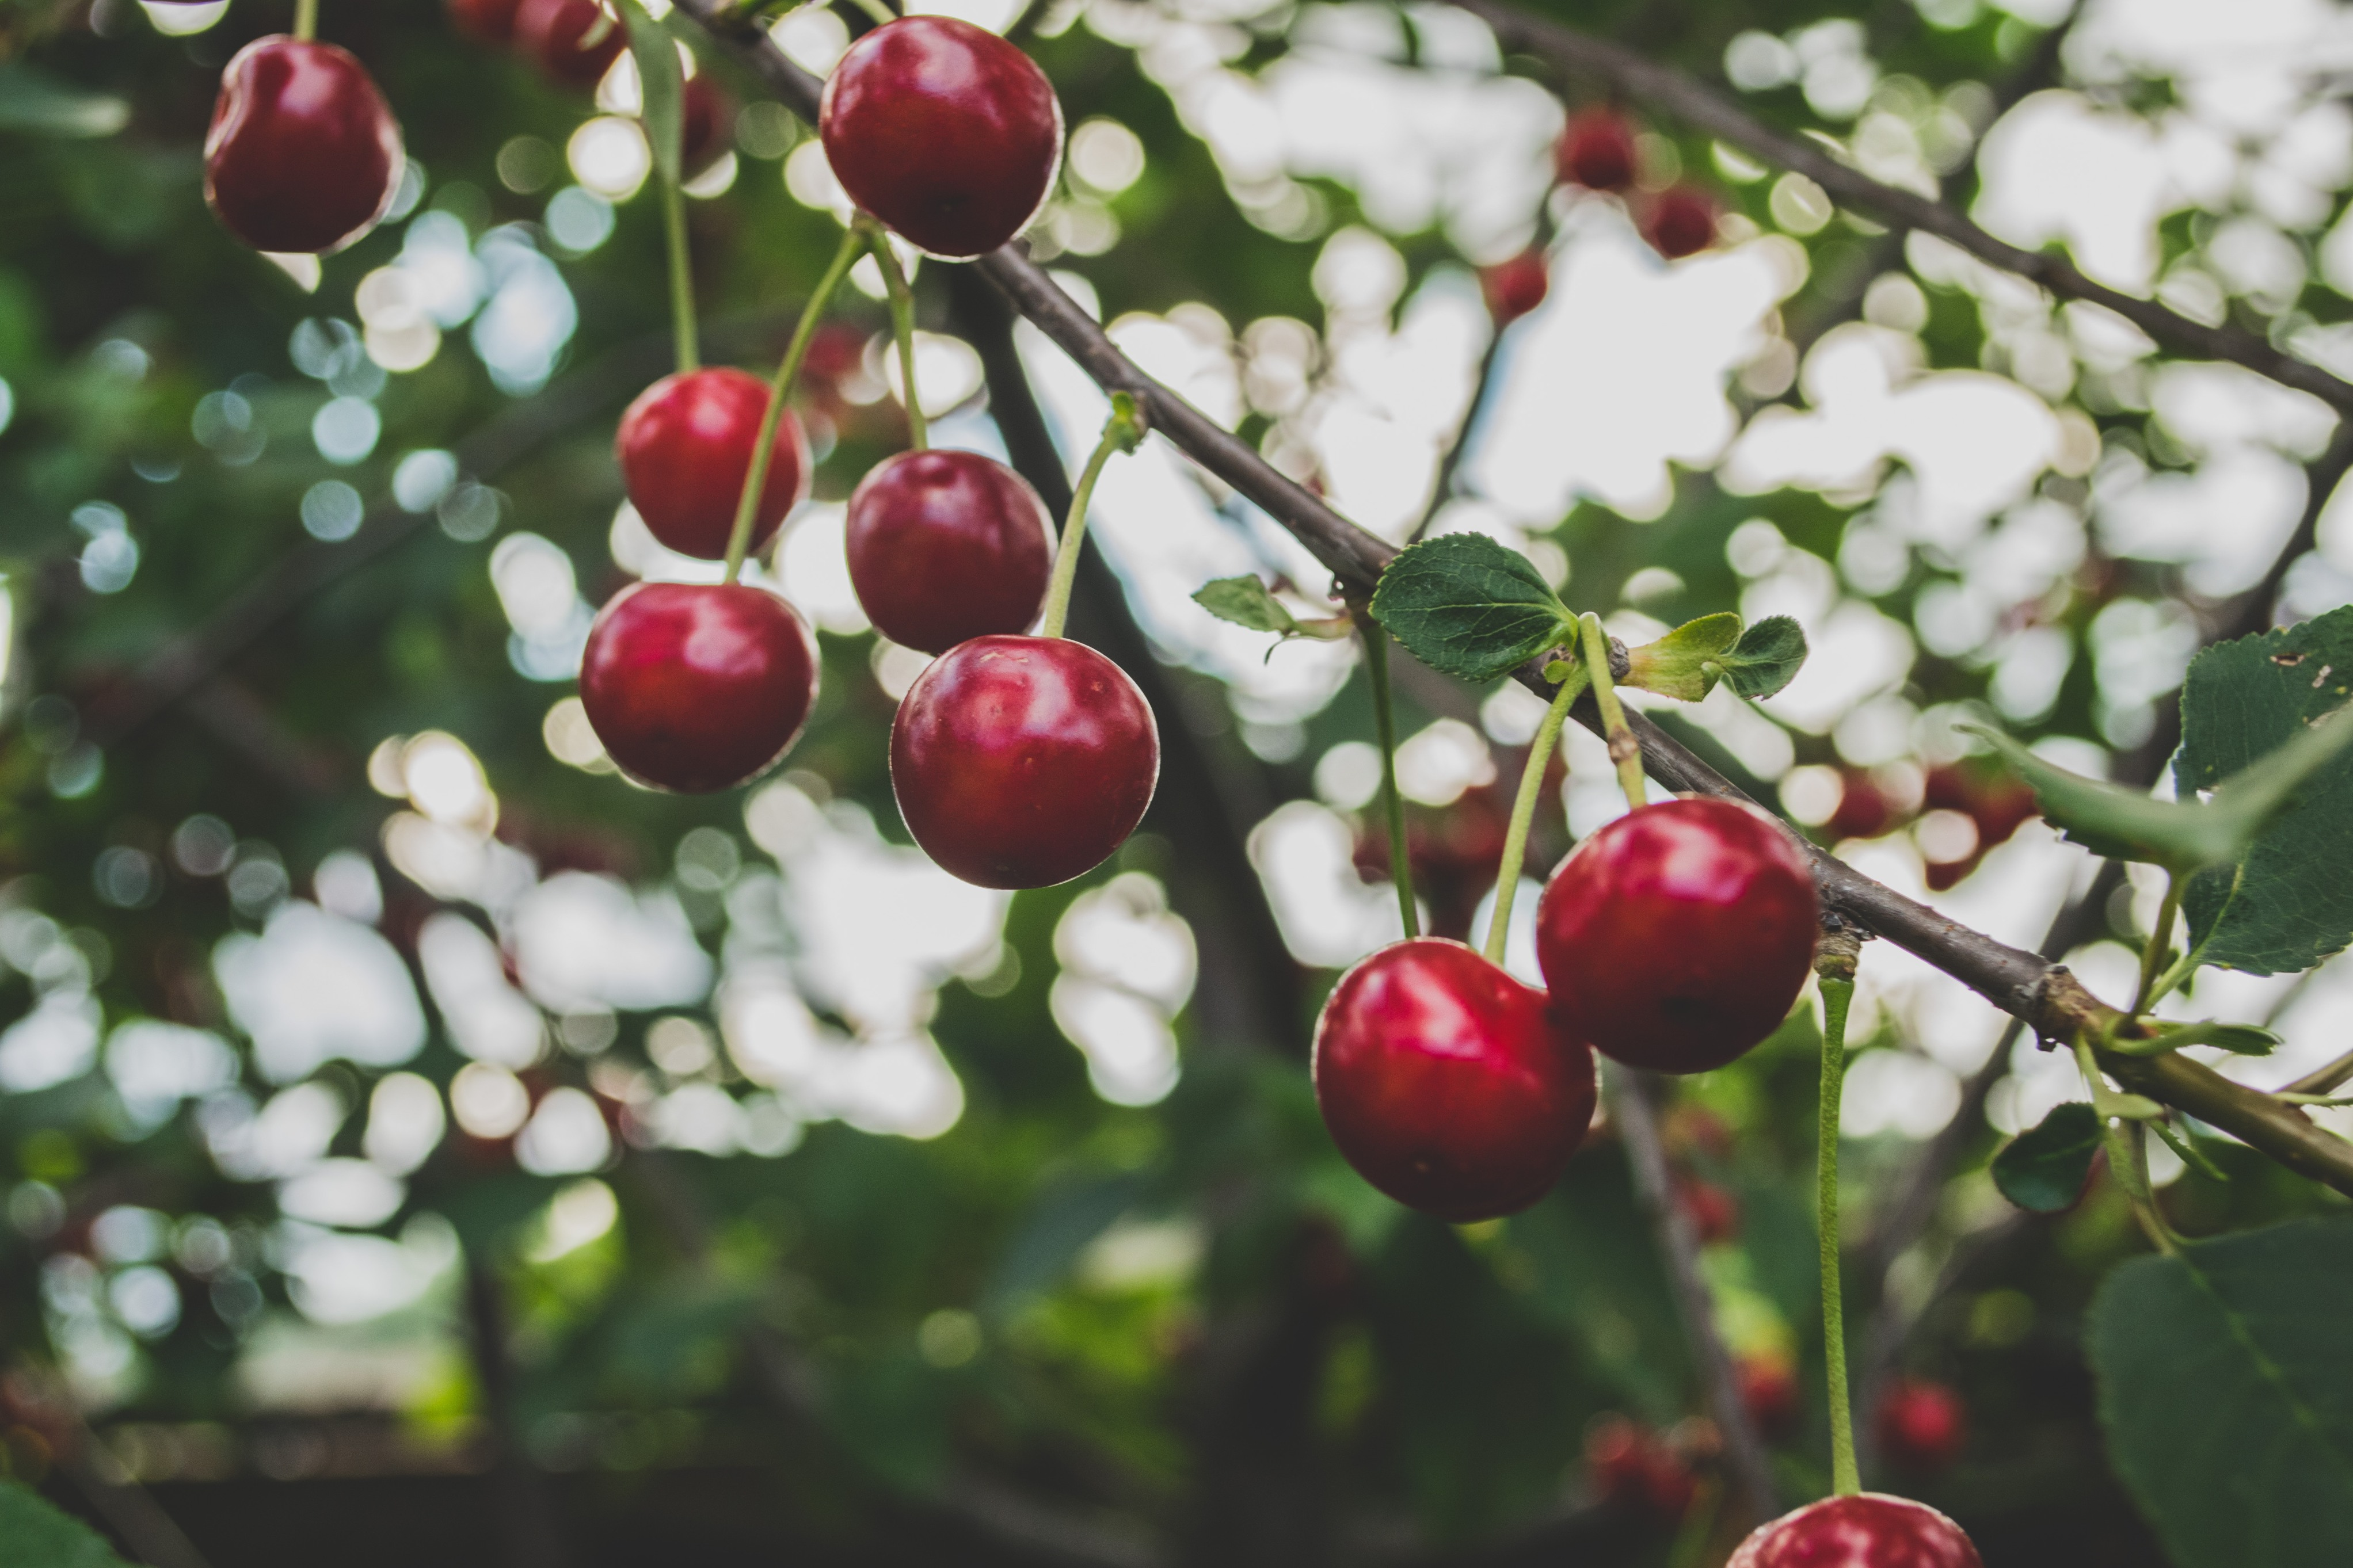 Cherry fruits in a tree branch